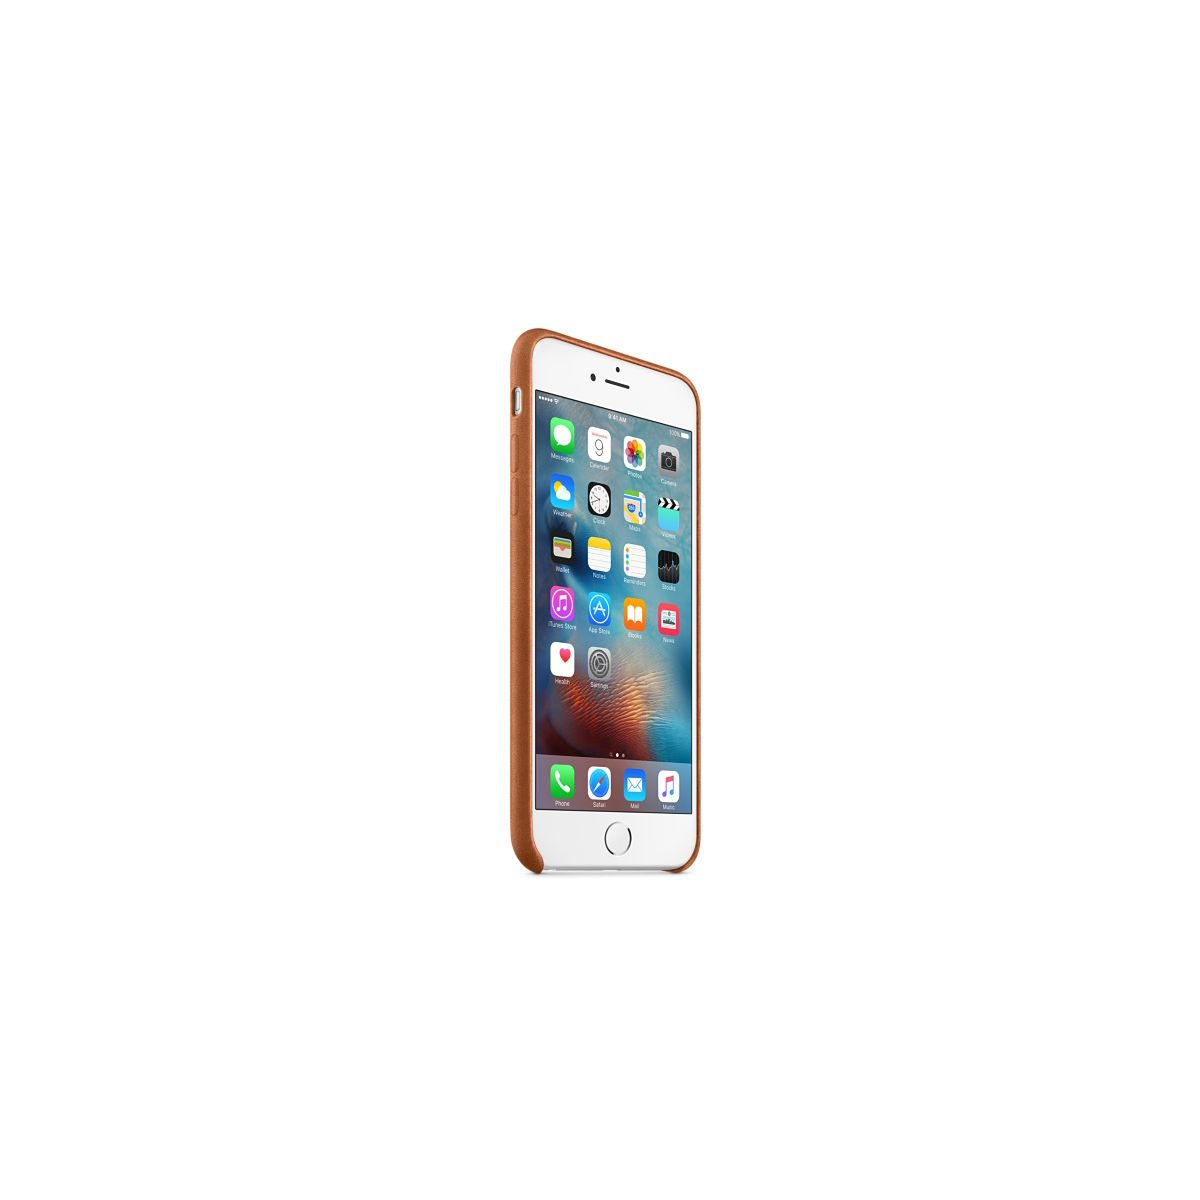 Coque apple iphone 6s plus cuir havane (photo)